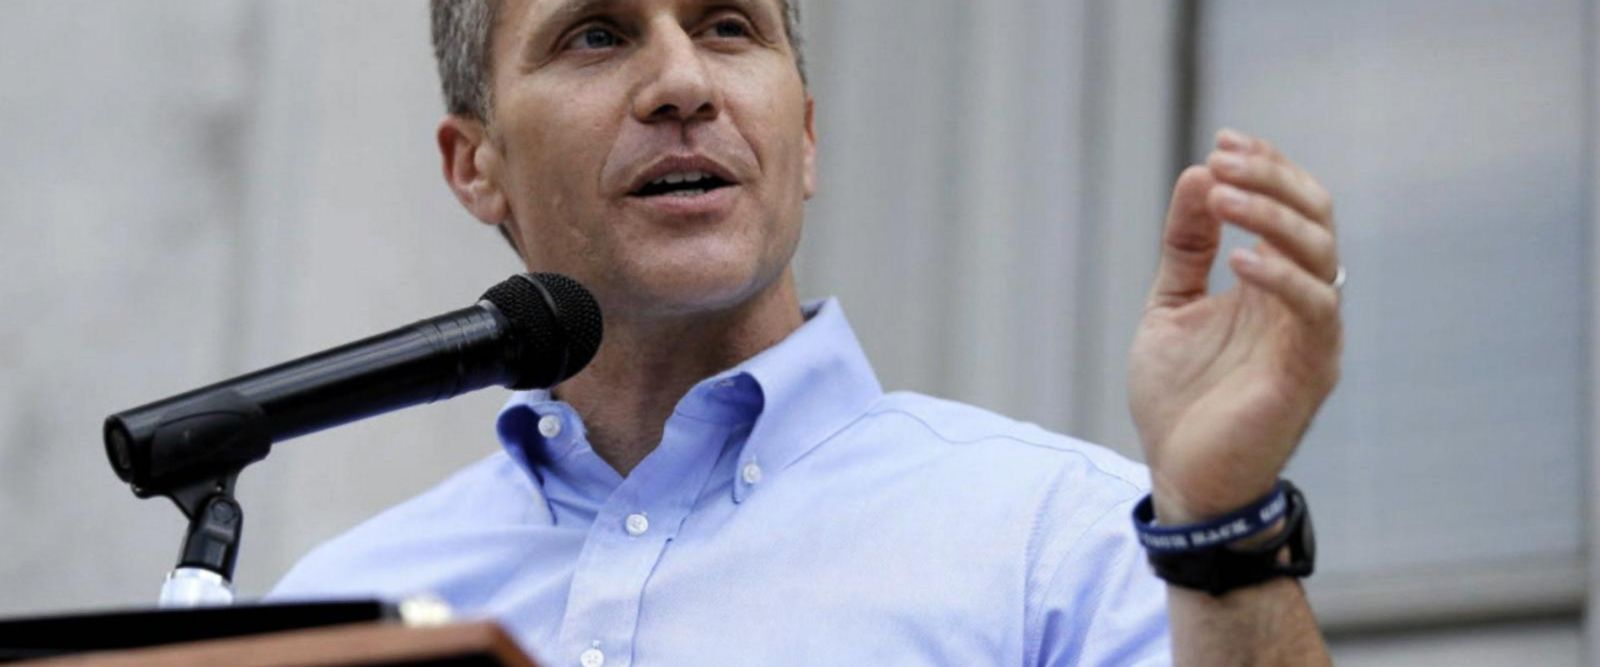 VIDEO: Missouri Governor claims no blackmail in extramarital affair